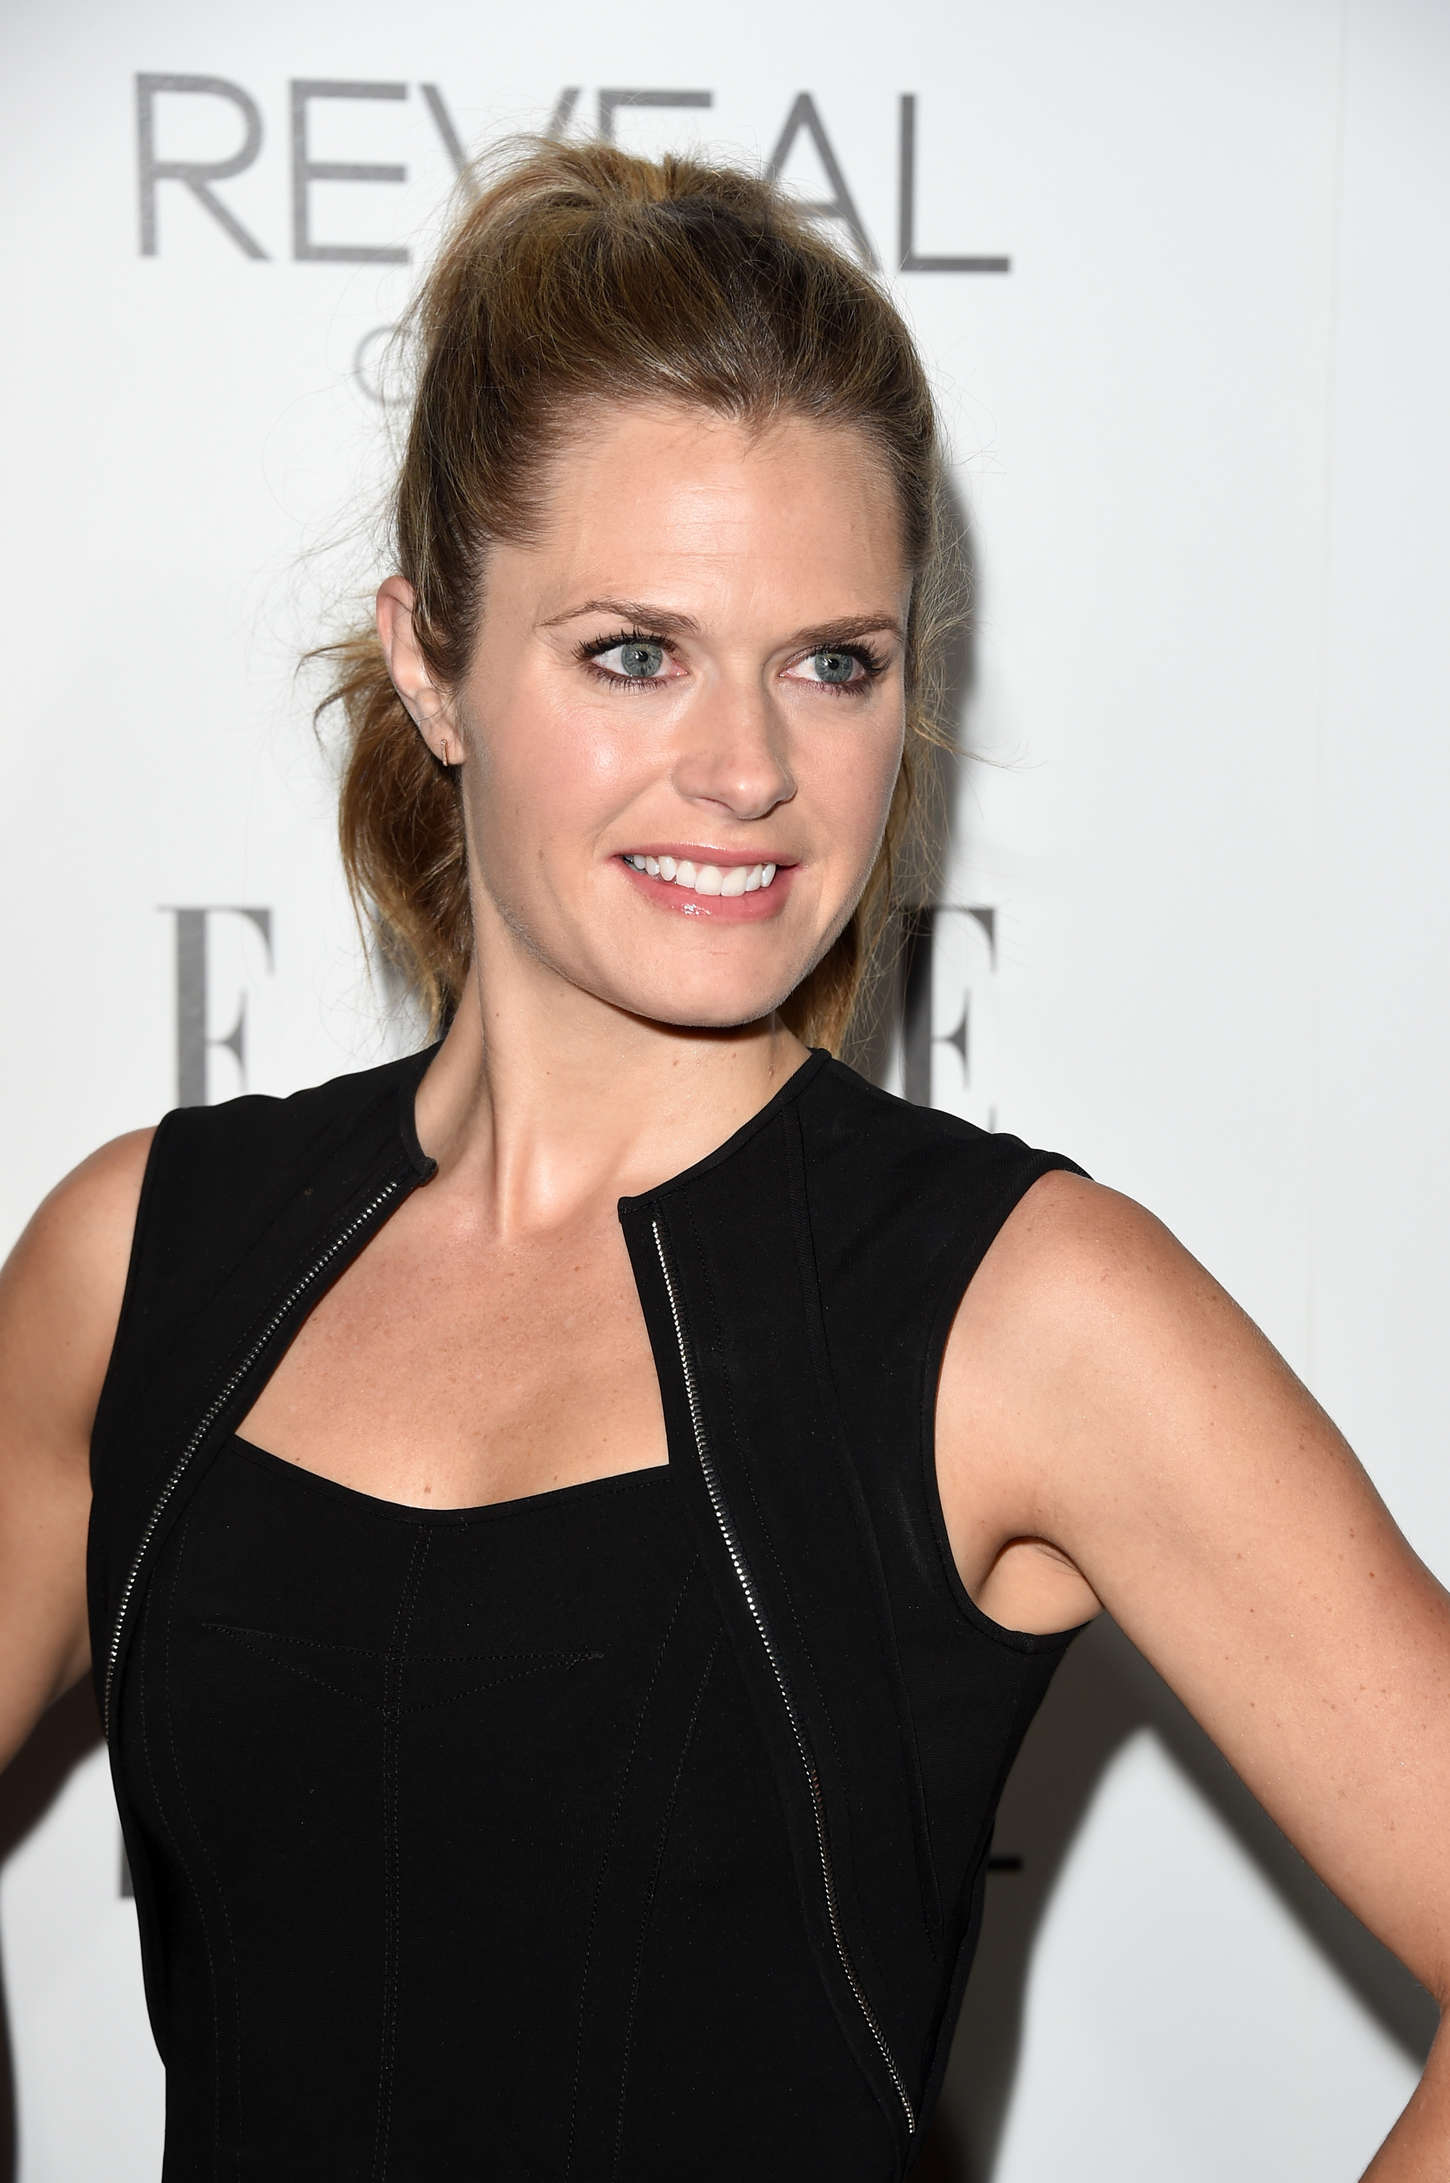 Maggie Lawson ELLEs annual Women In Hollywood Awards in Los Angeles